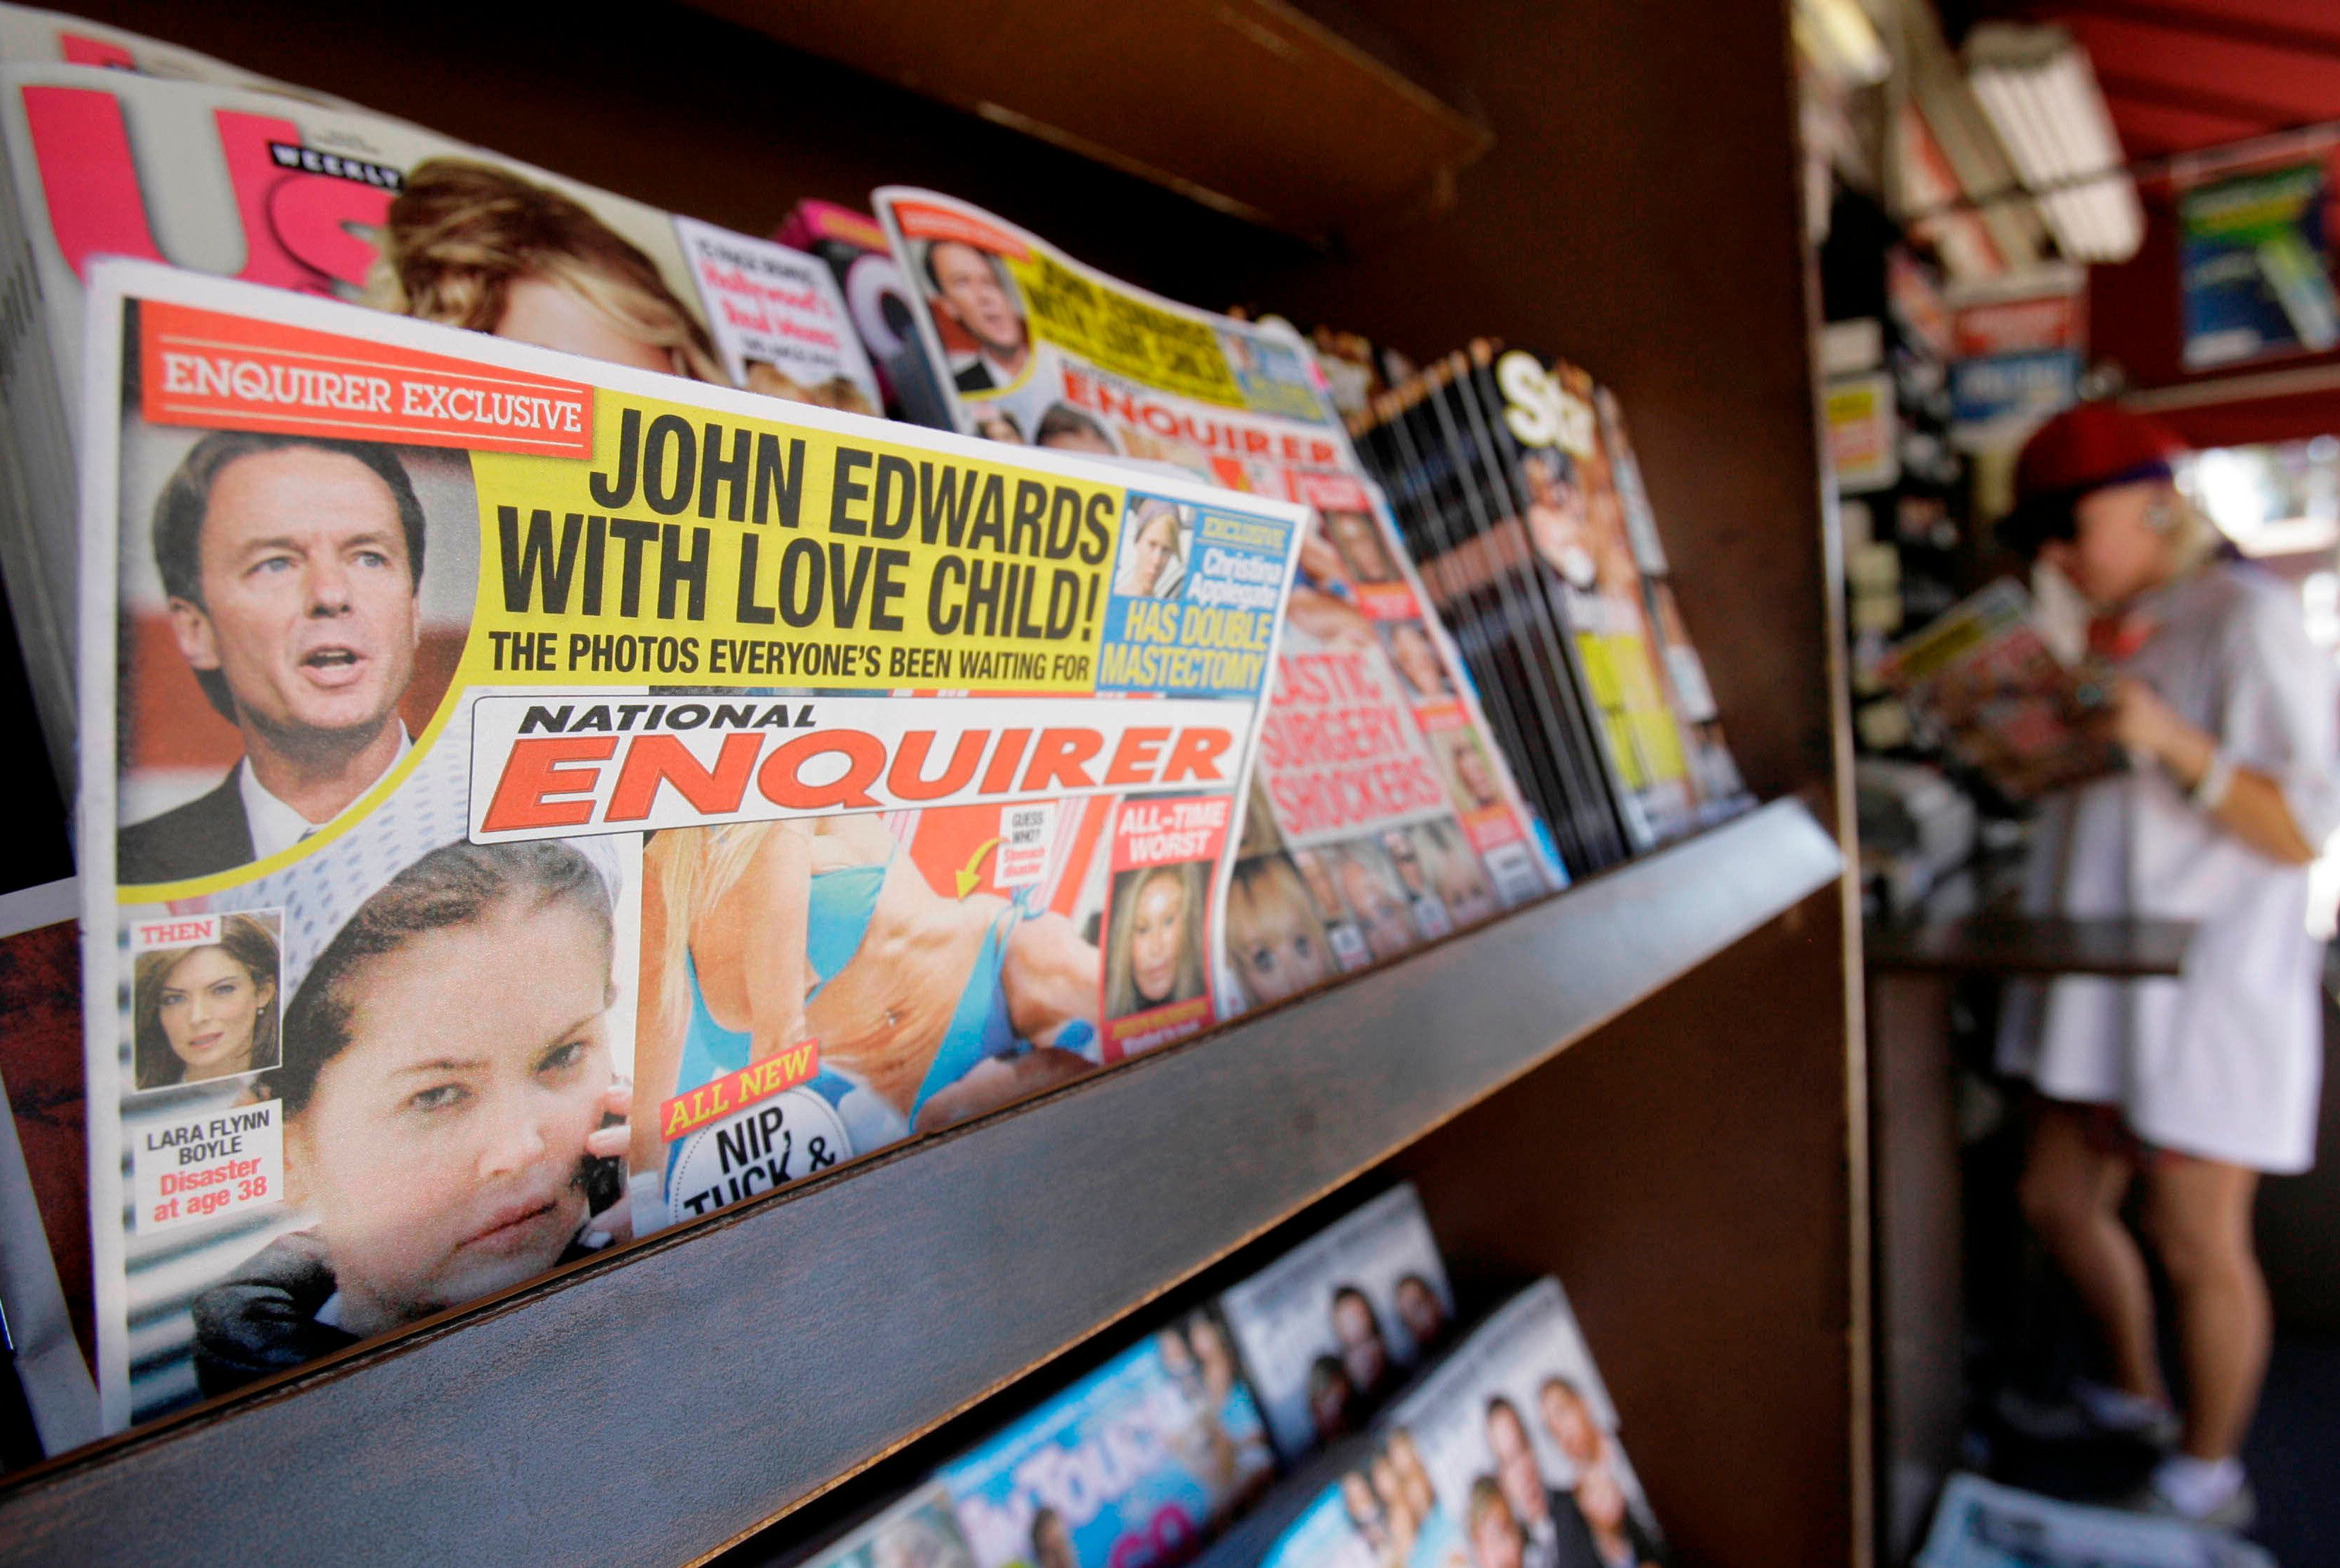 Here's Everything You Need To Know About The National Enquirer, Jeff Bezos And Donald